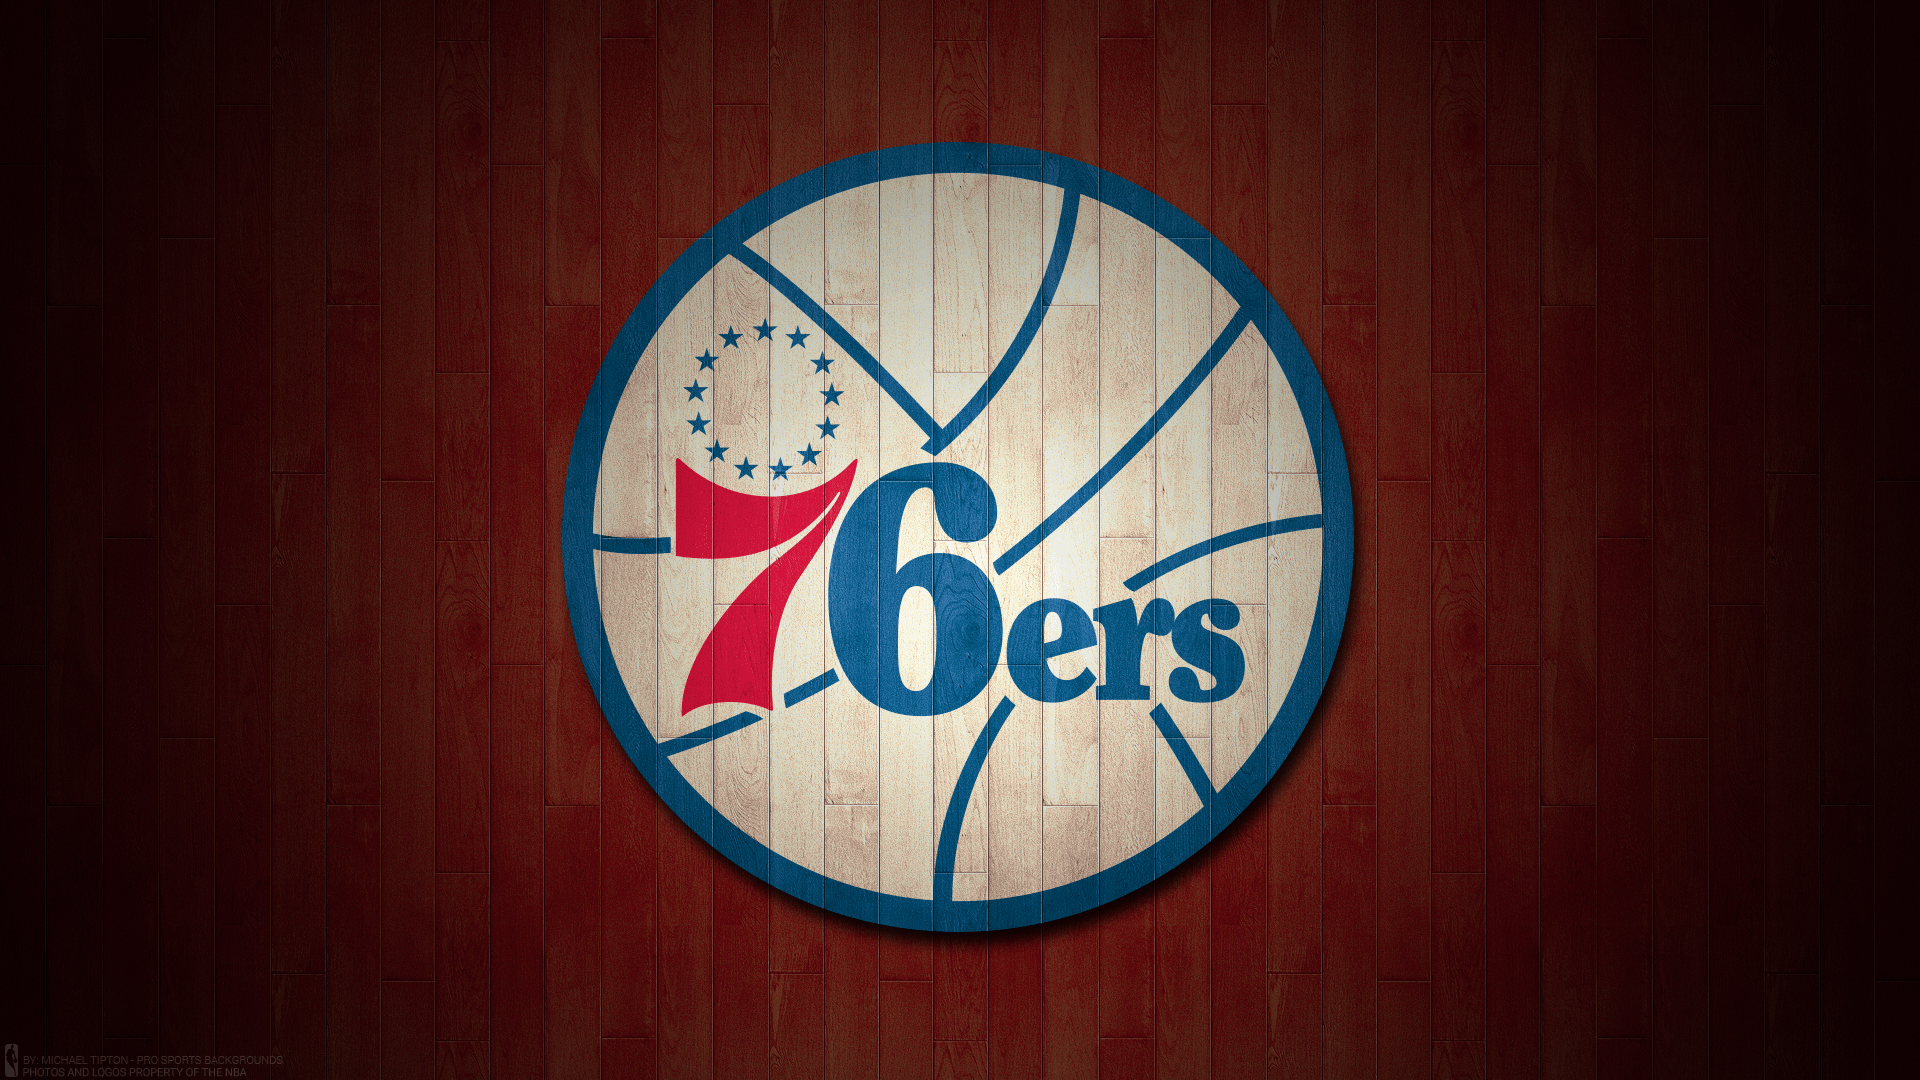 76ers Wallpapers Top Free 76ers Backgrounds Wallpaperaccess